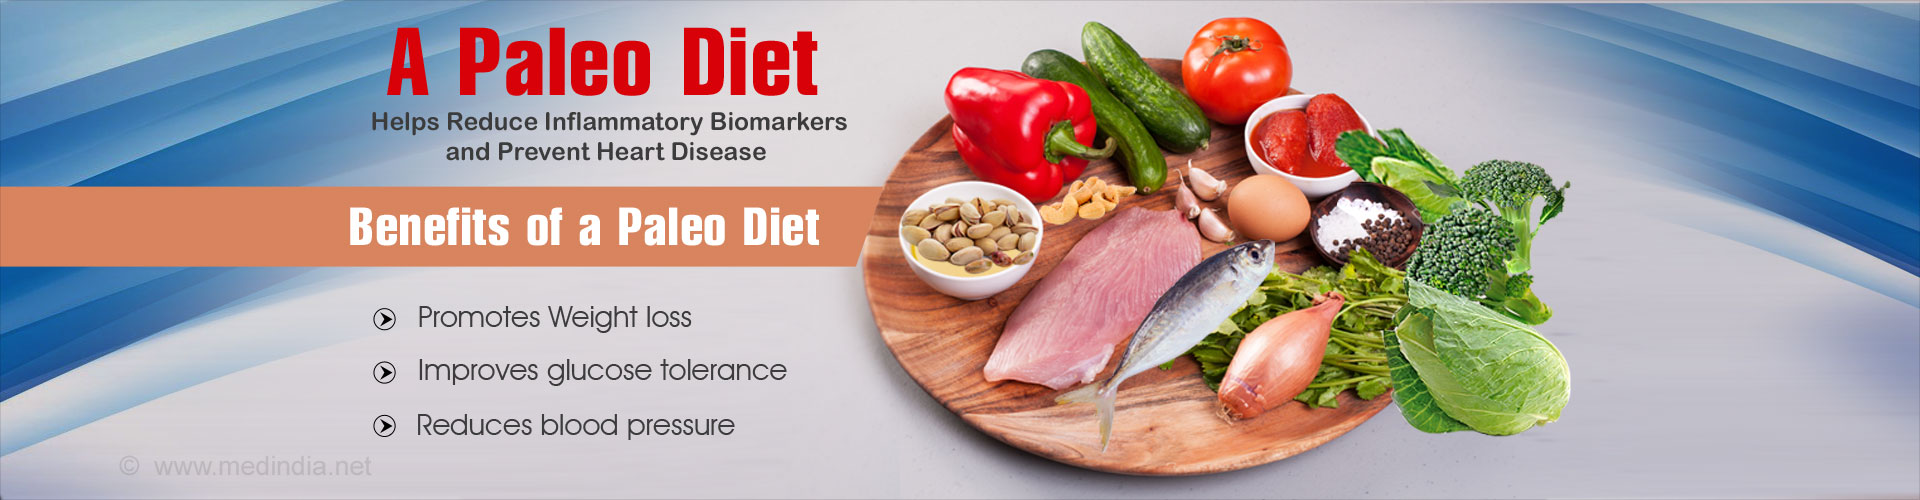 Benefits of a Paleo Diet